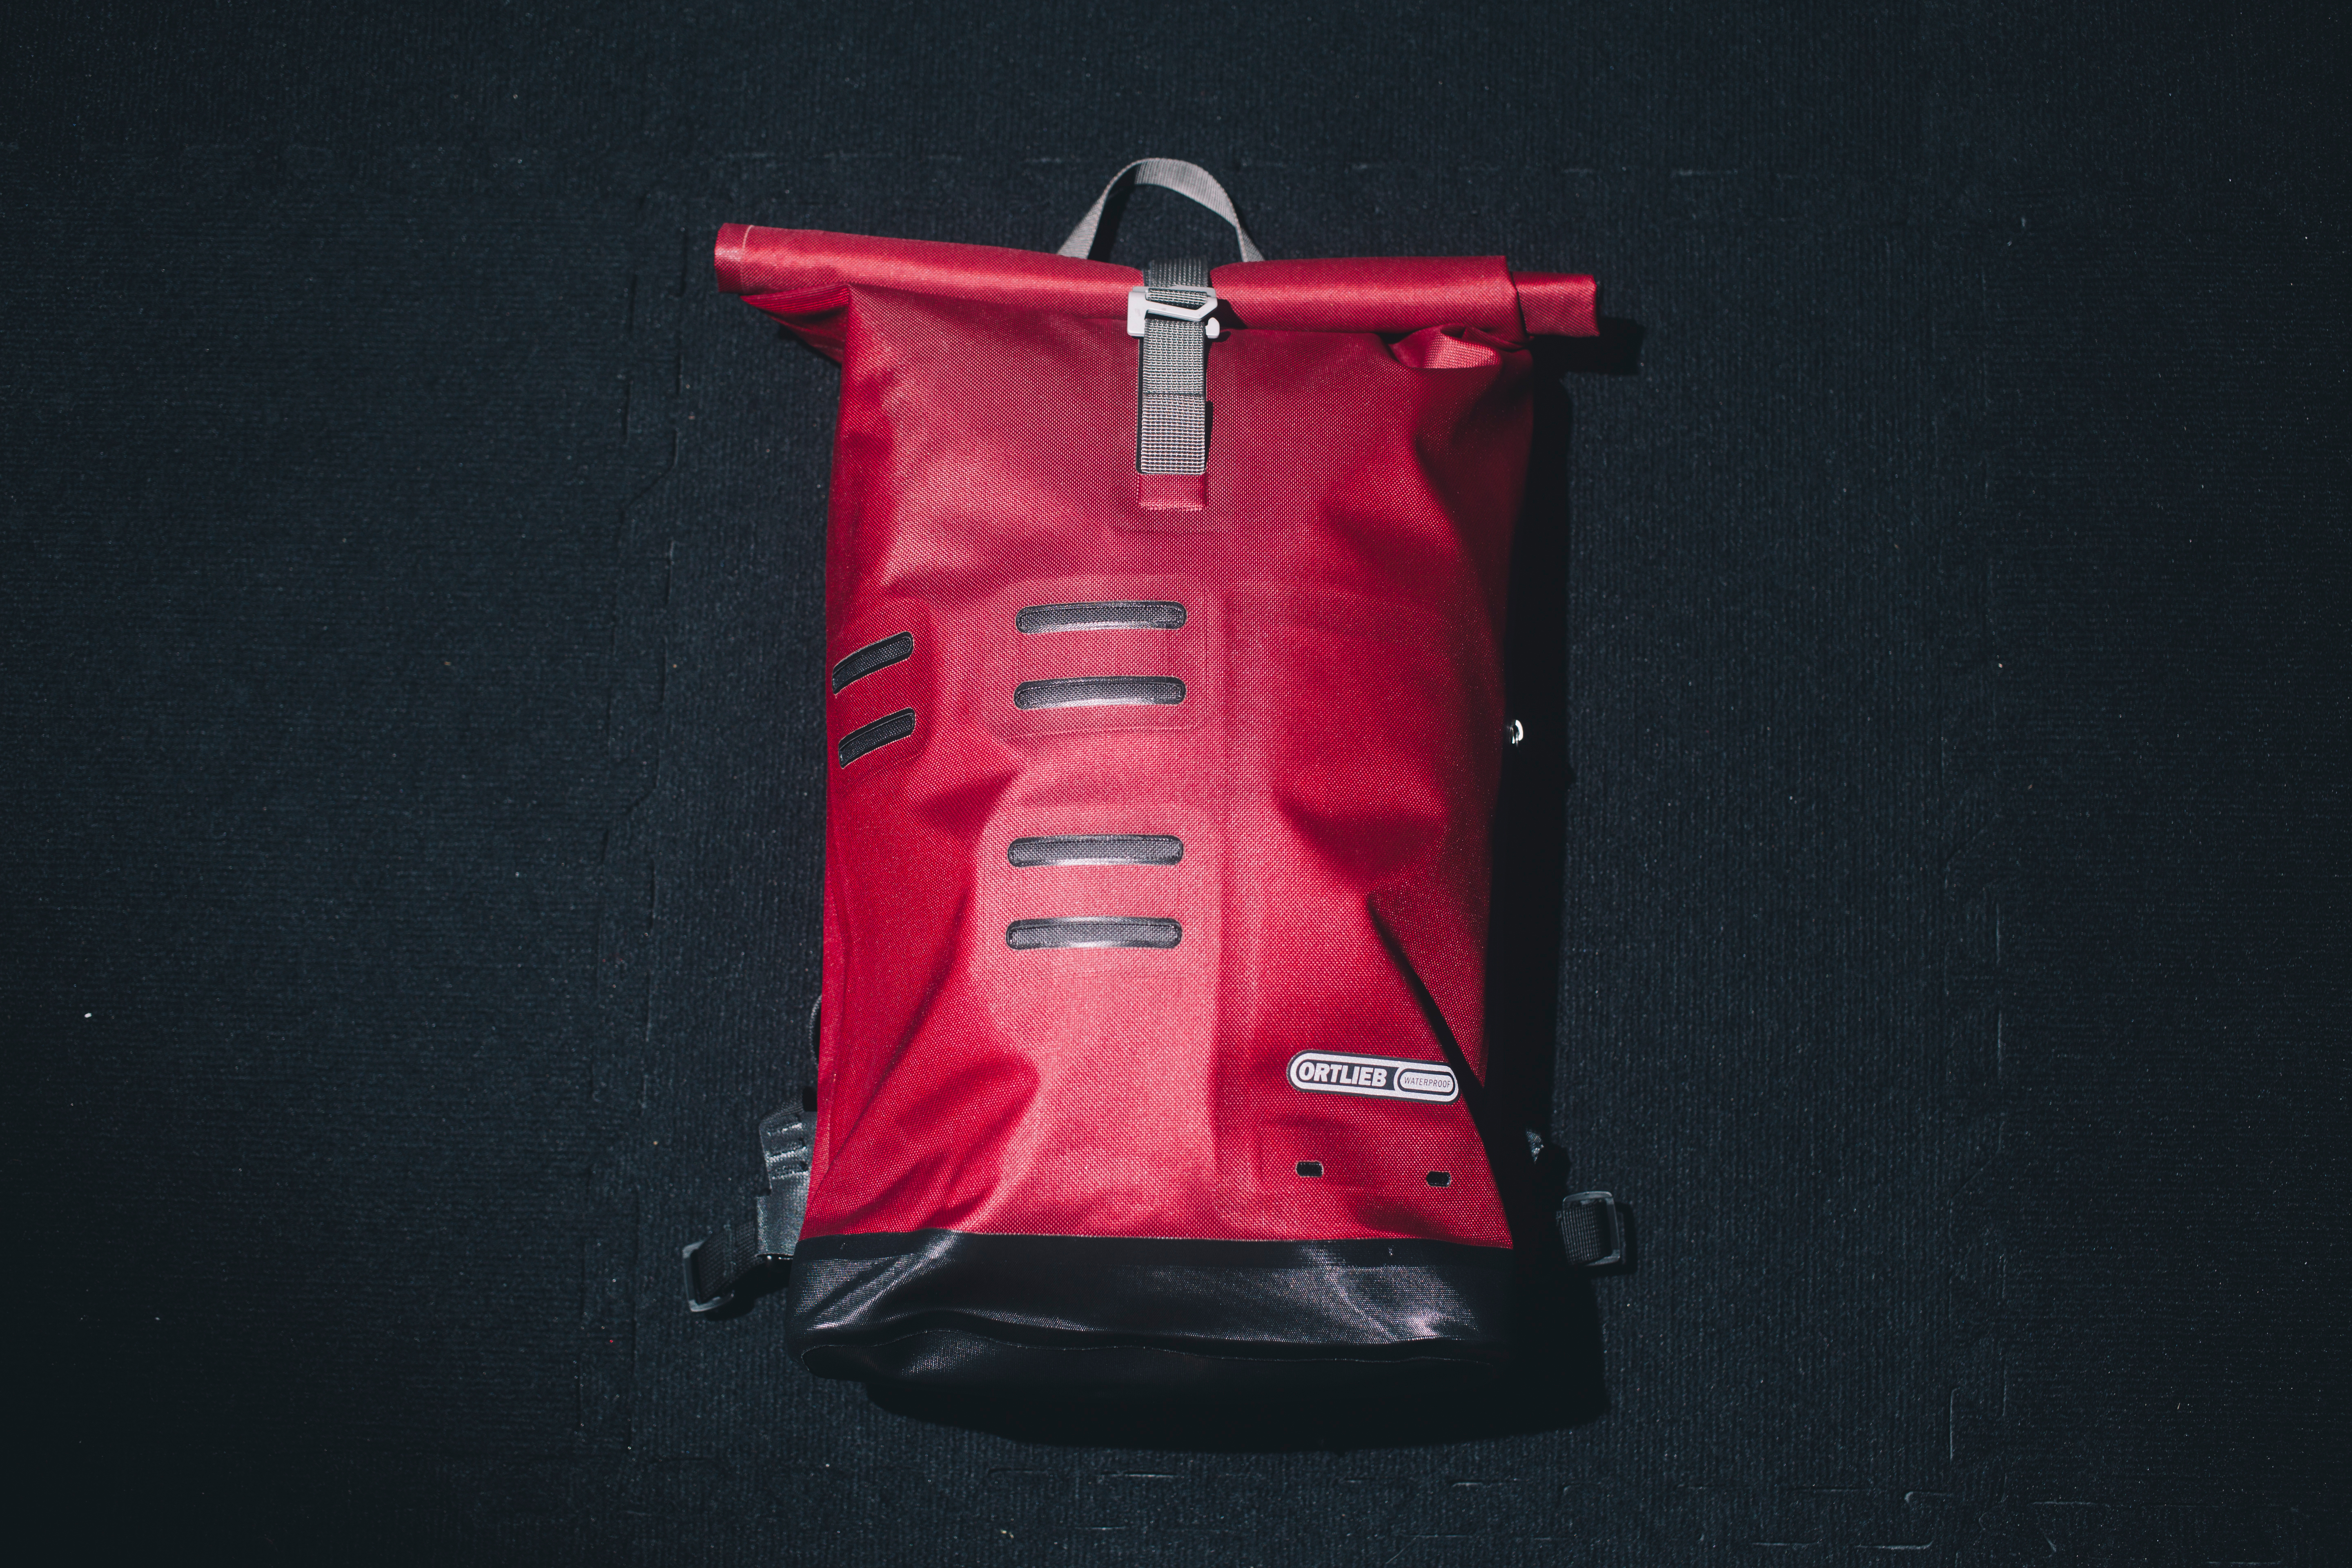 Ortlieb's Urban day pack: It doesn't have a gazillion pockets with fancy theatrical names on them but what you get is a minimalist yet highly functional design for your daily commute. Plus, it's made in Germany. Photo: Stephen Lam/Element.ly